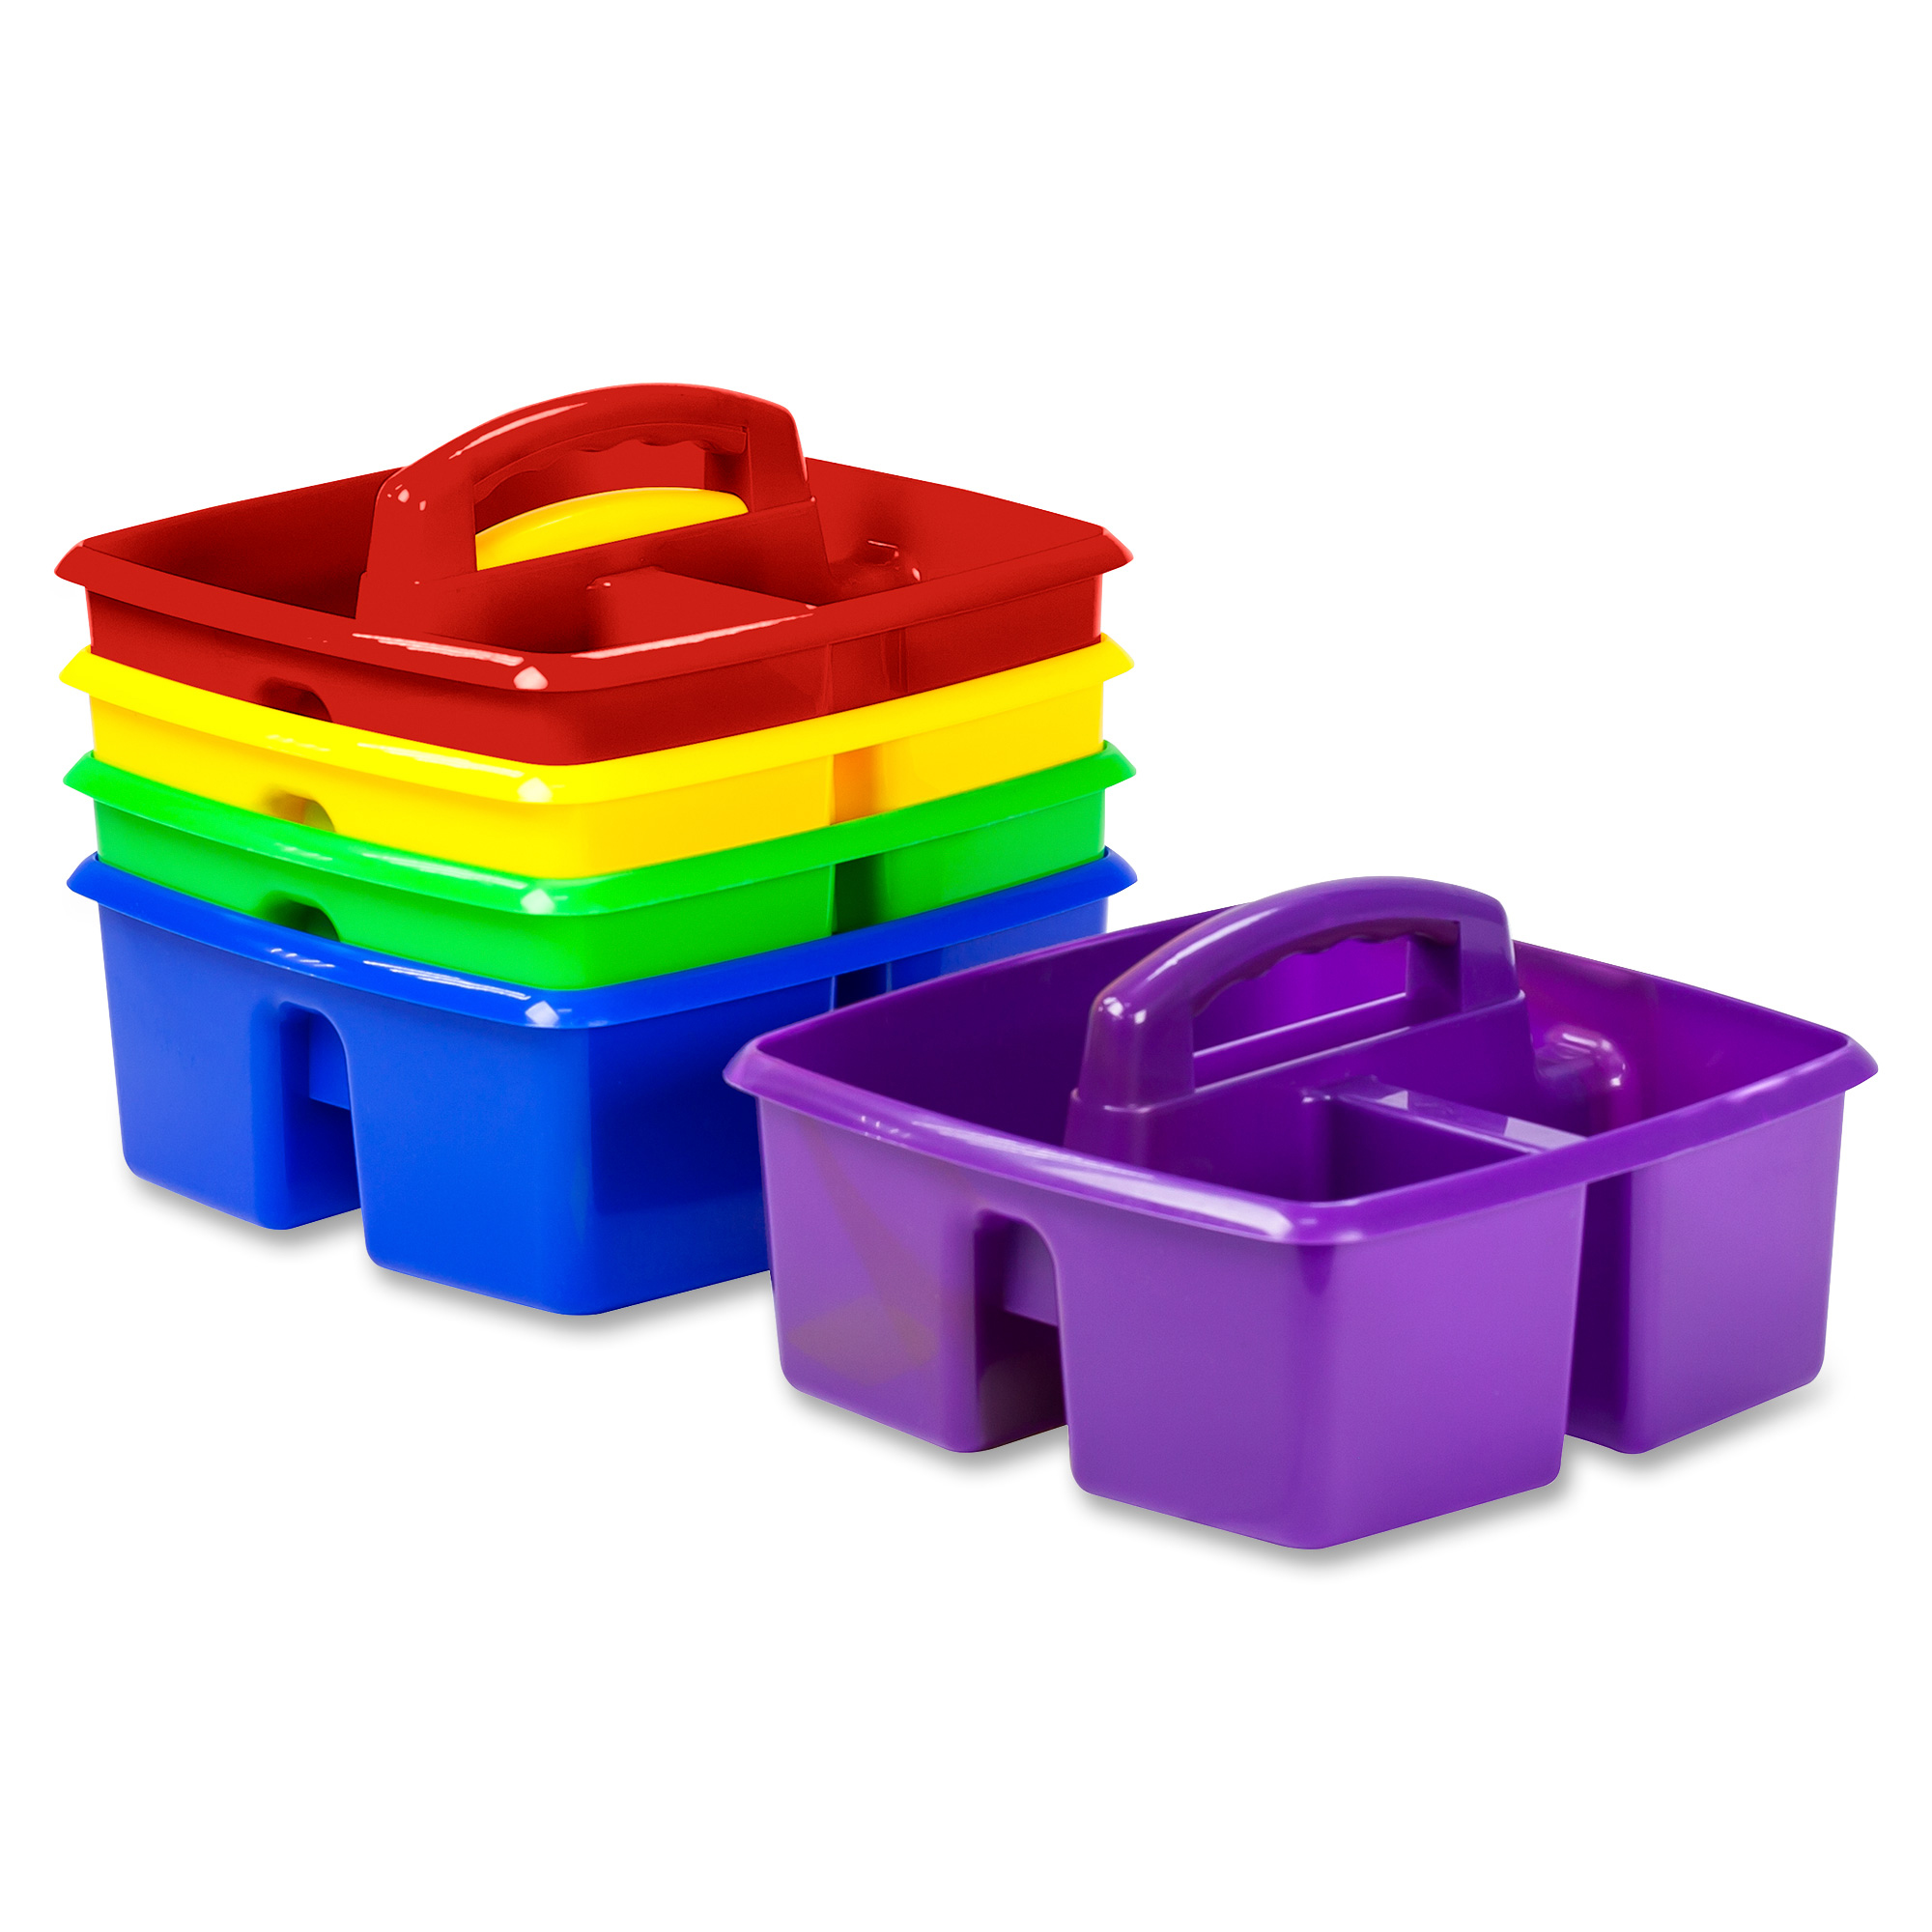 Storex Classroom Caddy, Set of 5, Assorted Colors, Plastic